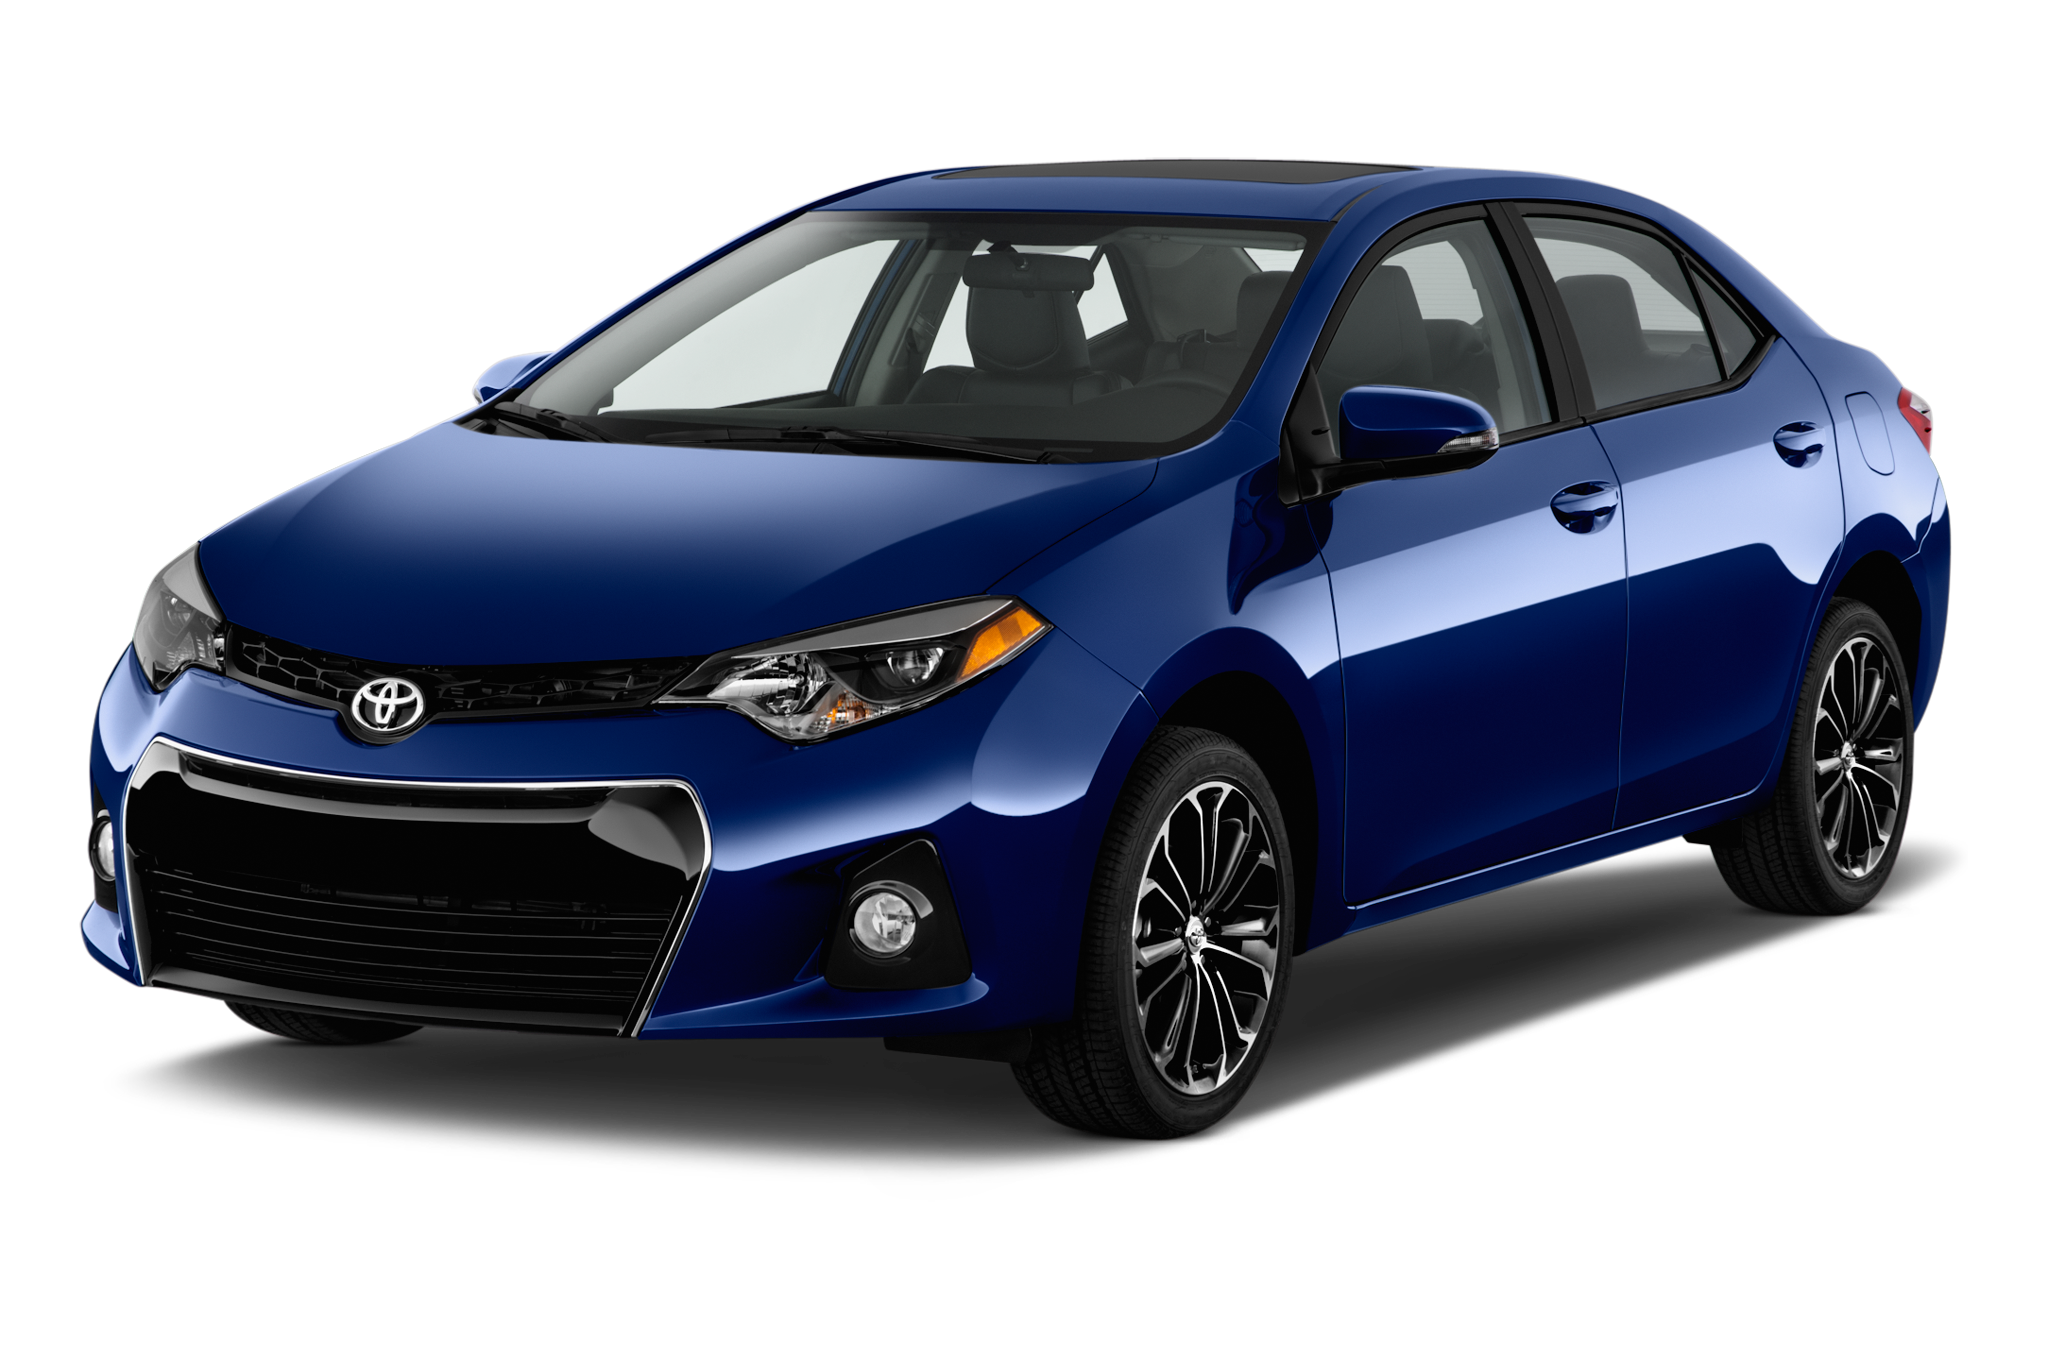 2016 toyota corolla s premium at overview msn autos. Black Bedroom Furniture Sets. Home Design Ideas